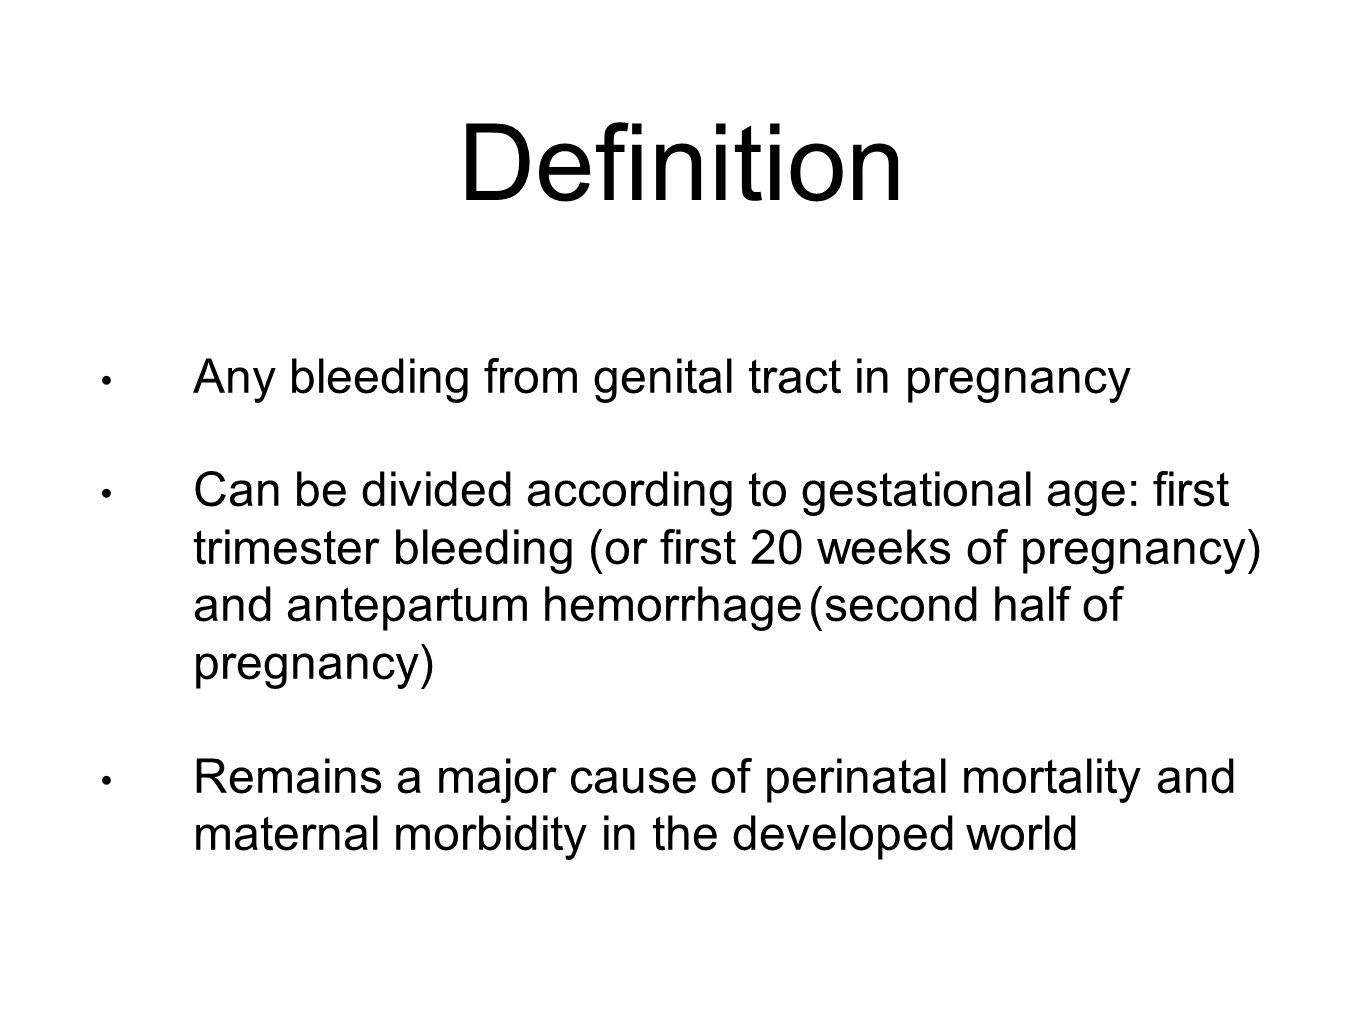 How is the definition of pregnancy in the early stages 68